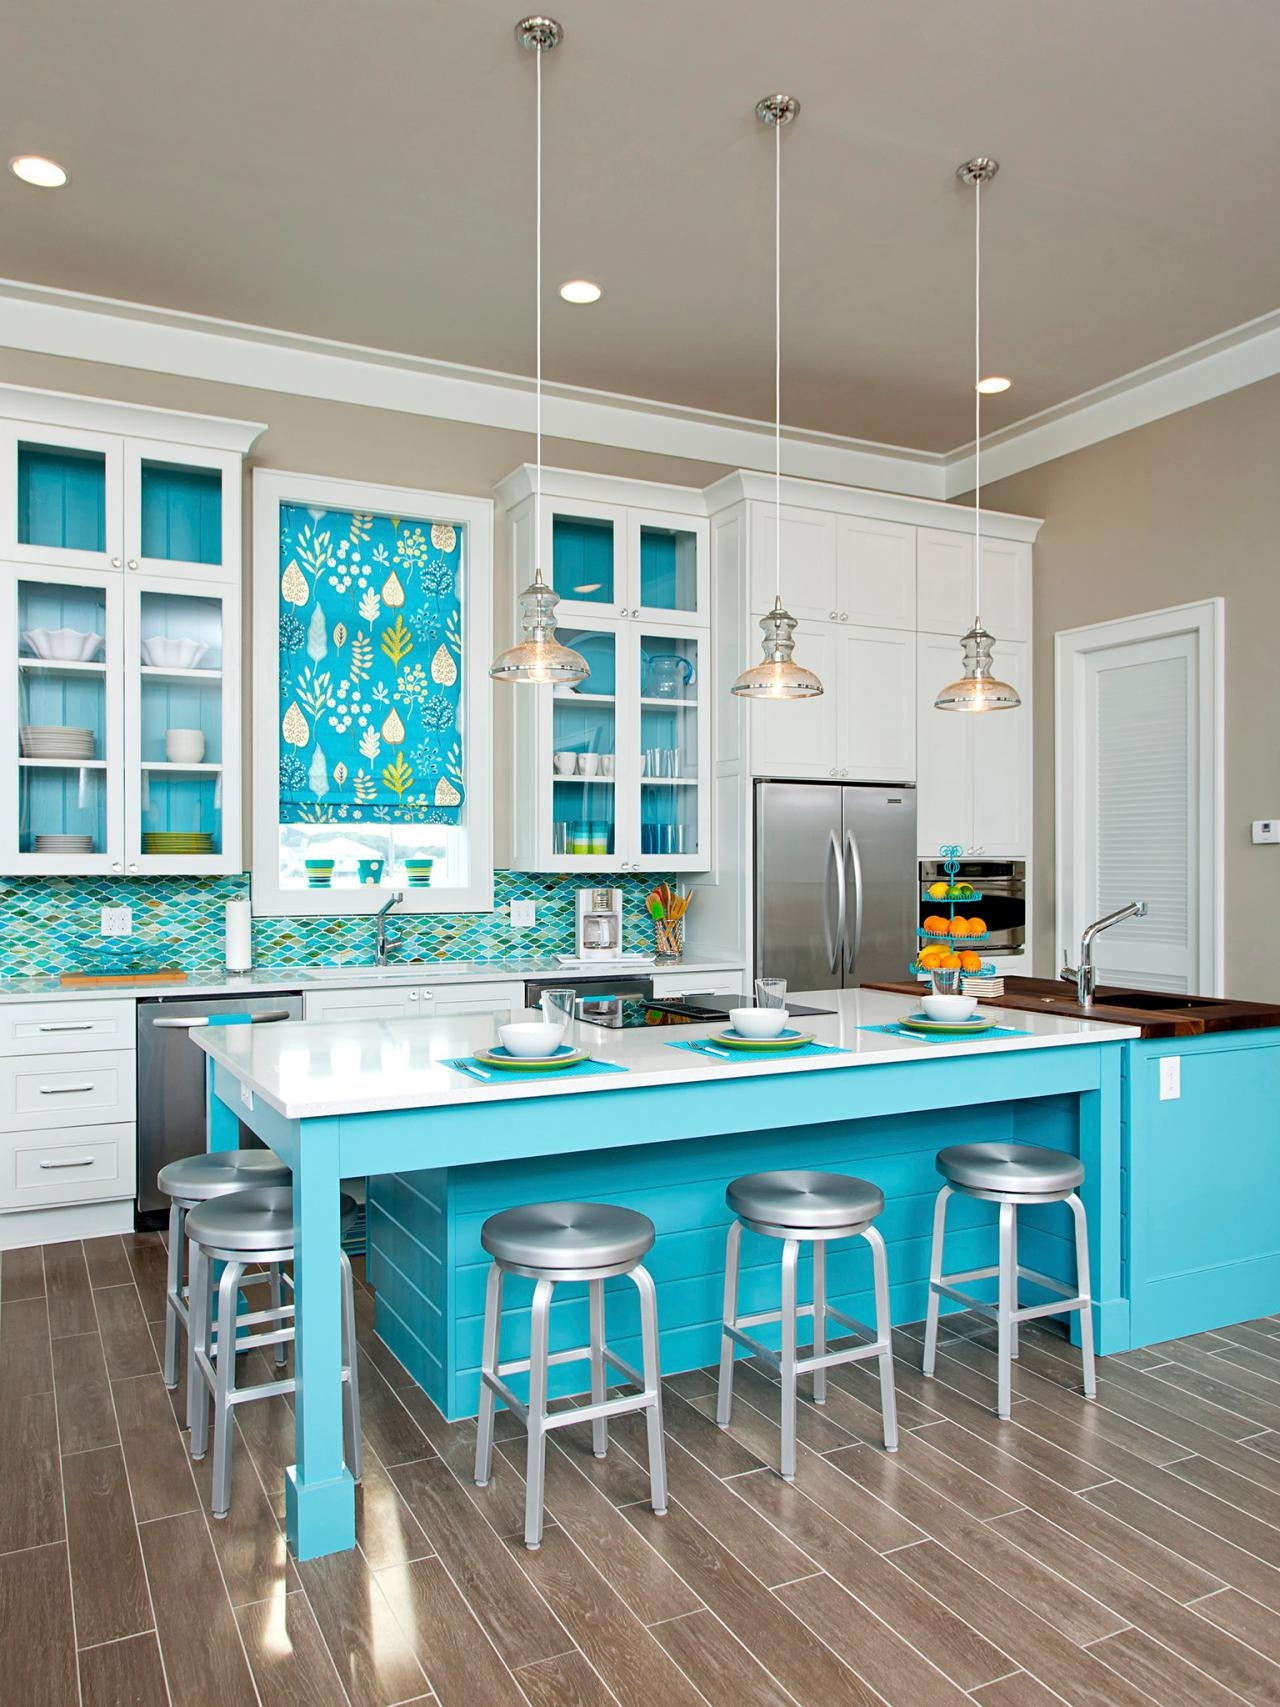 Beach Style Kitchen Cabinet Hardware